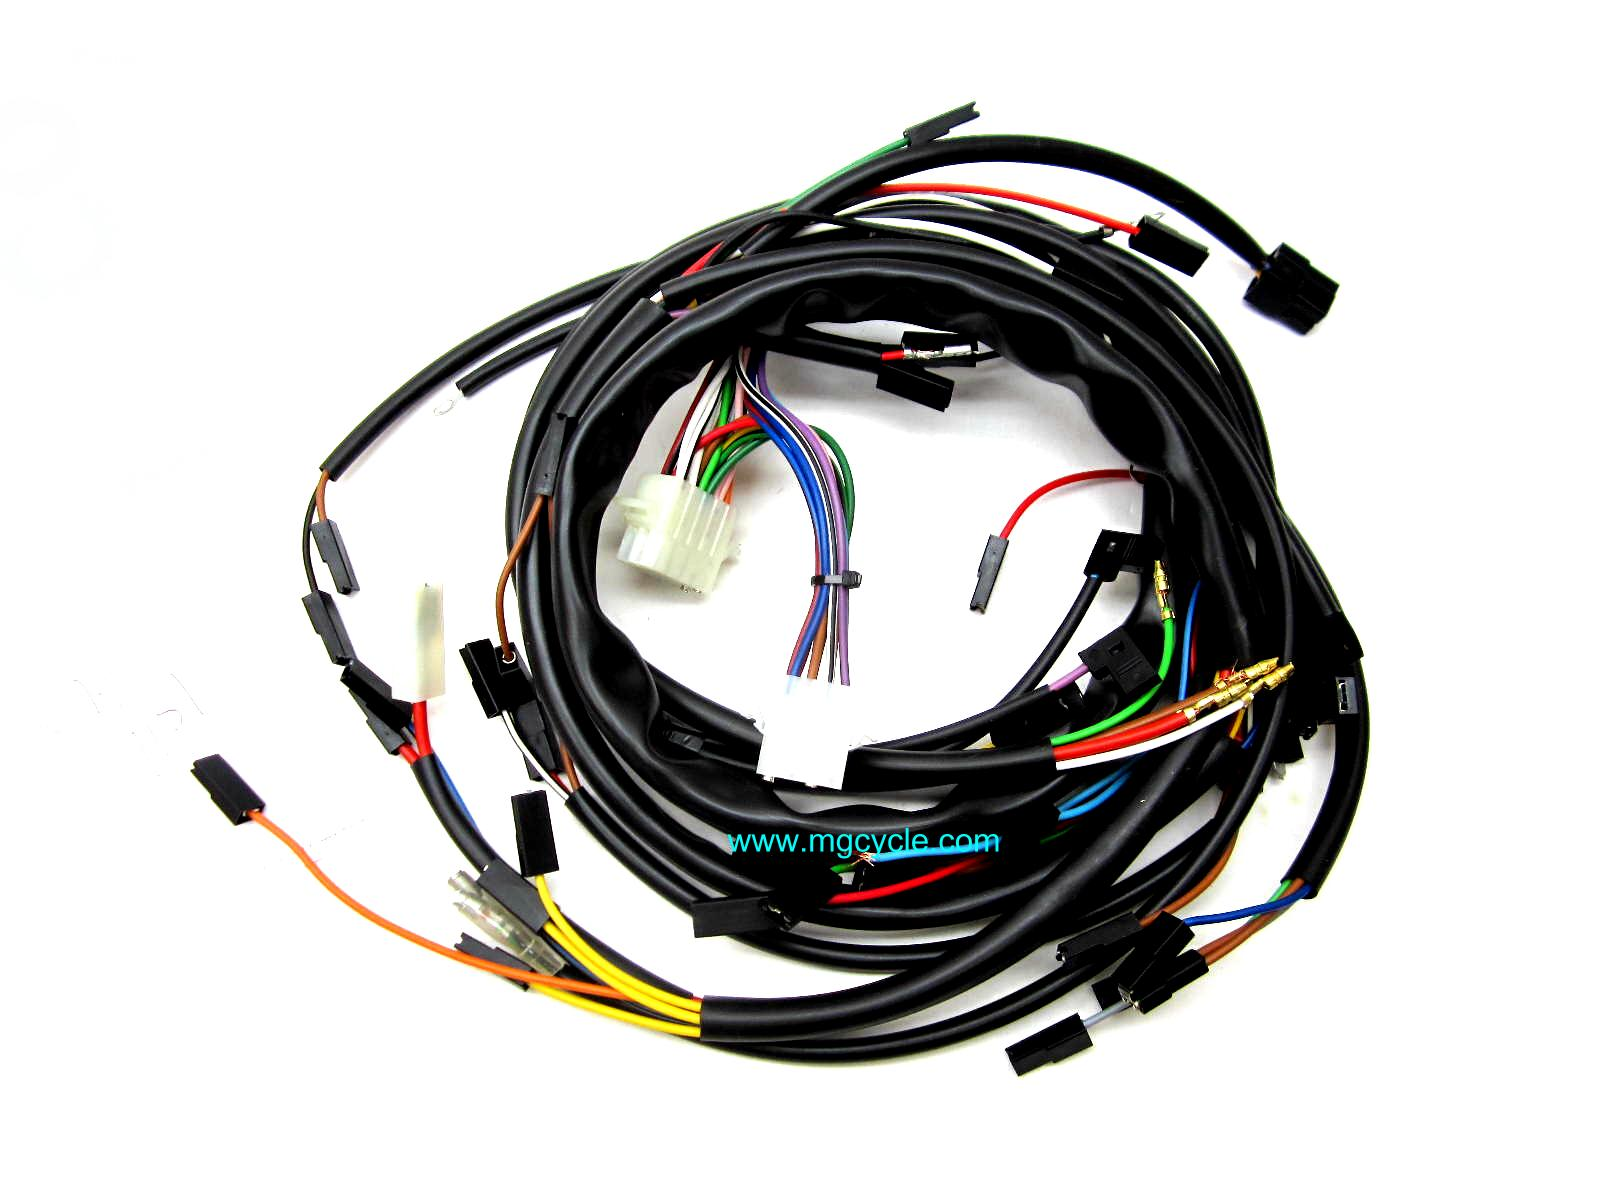 Wiring Mg Cycle Moto Guzzi Parts And Accessories Available Online Main Harness Wire 1977 1978 850 Lemans